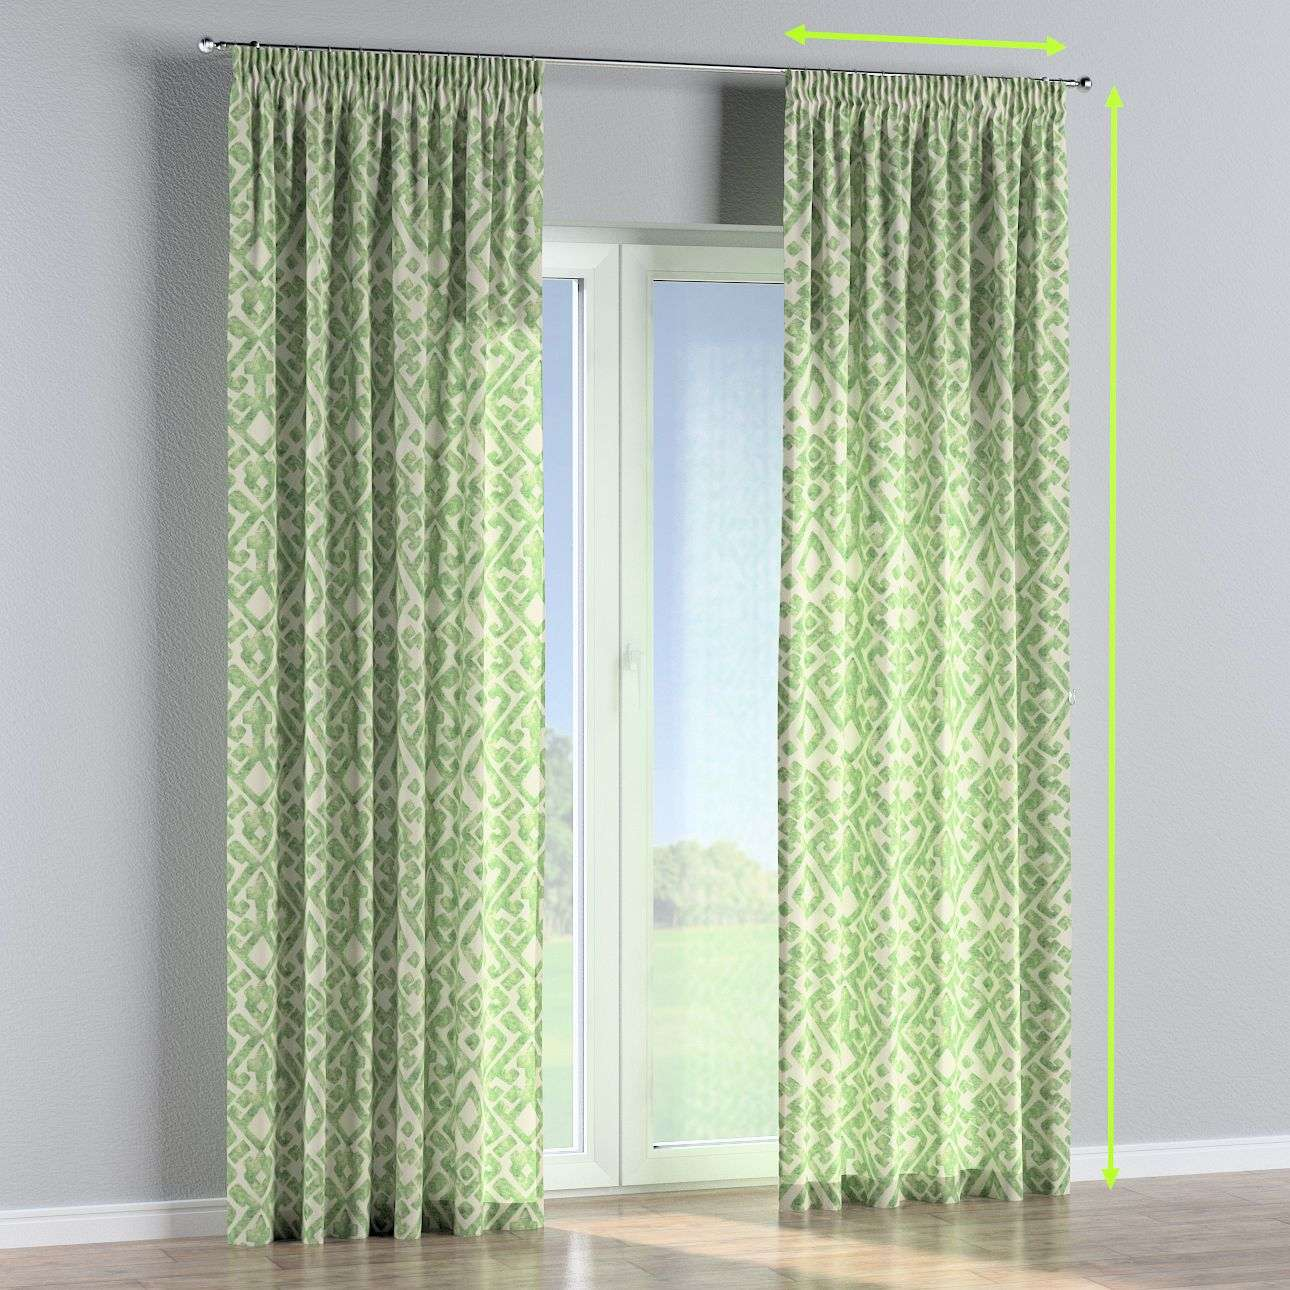 Pencil pleat lined curtains in collection Urban Jungle, fabric: 141-62